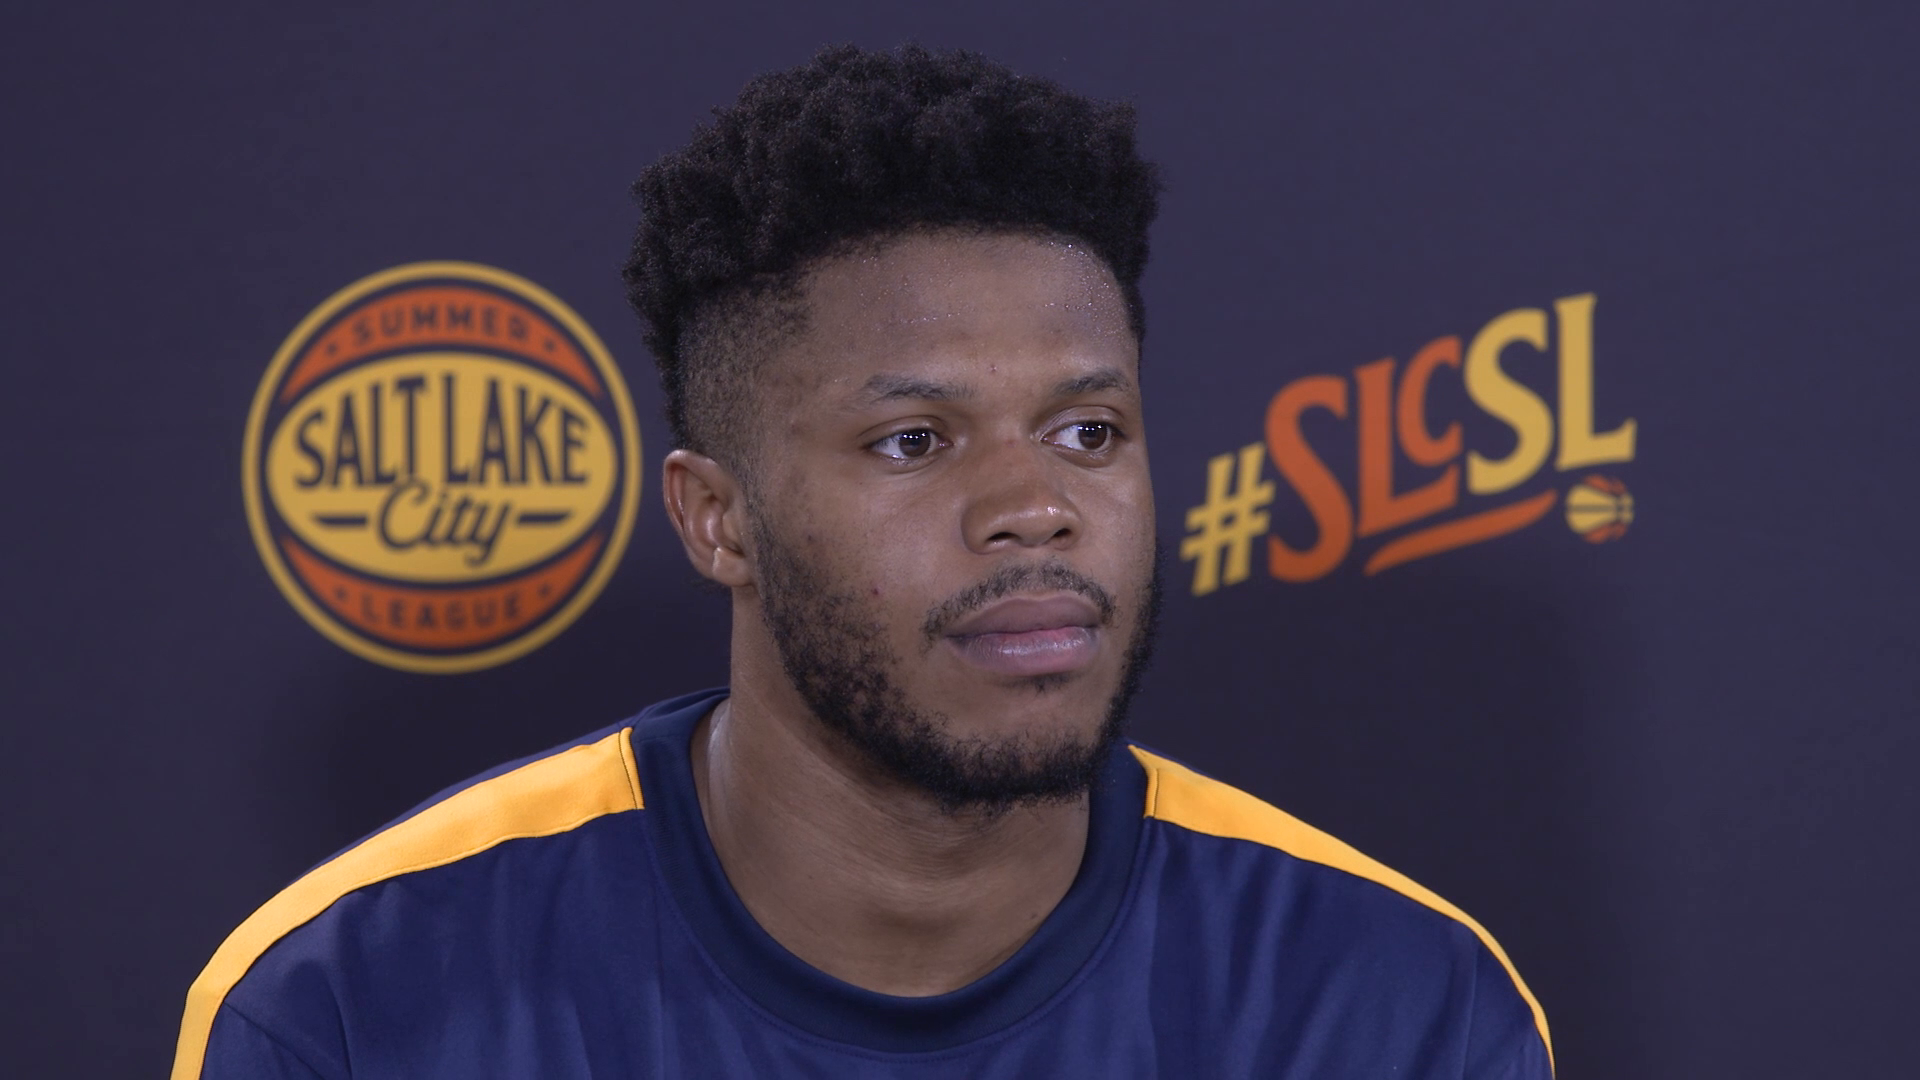 Justin Patton talks about playing on Team Blue for the Jazz